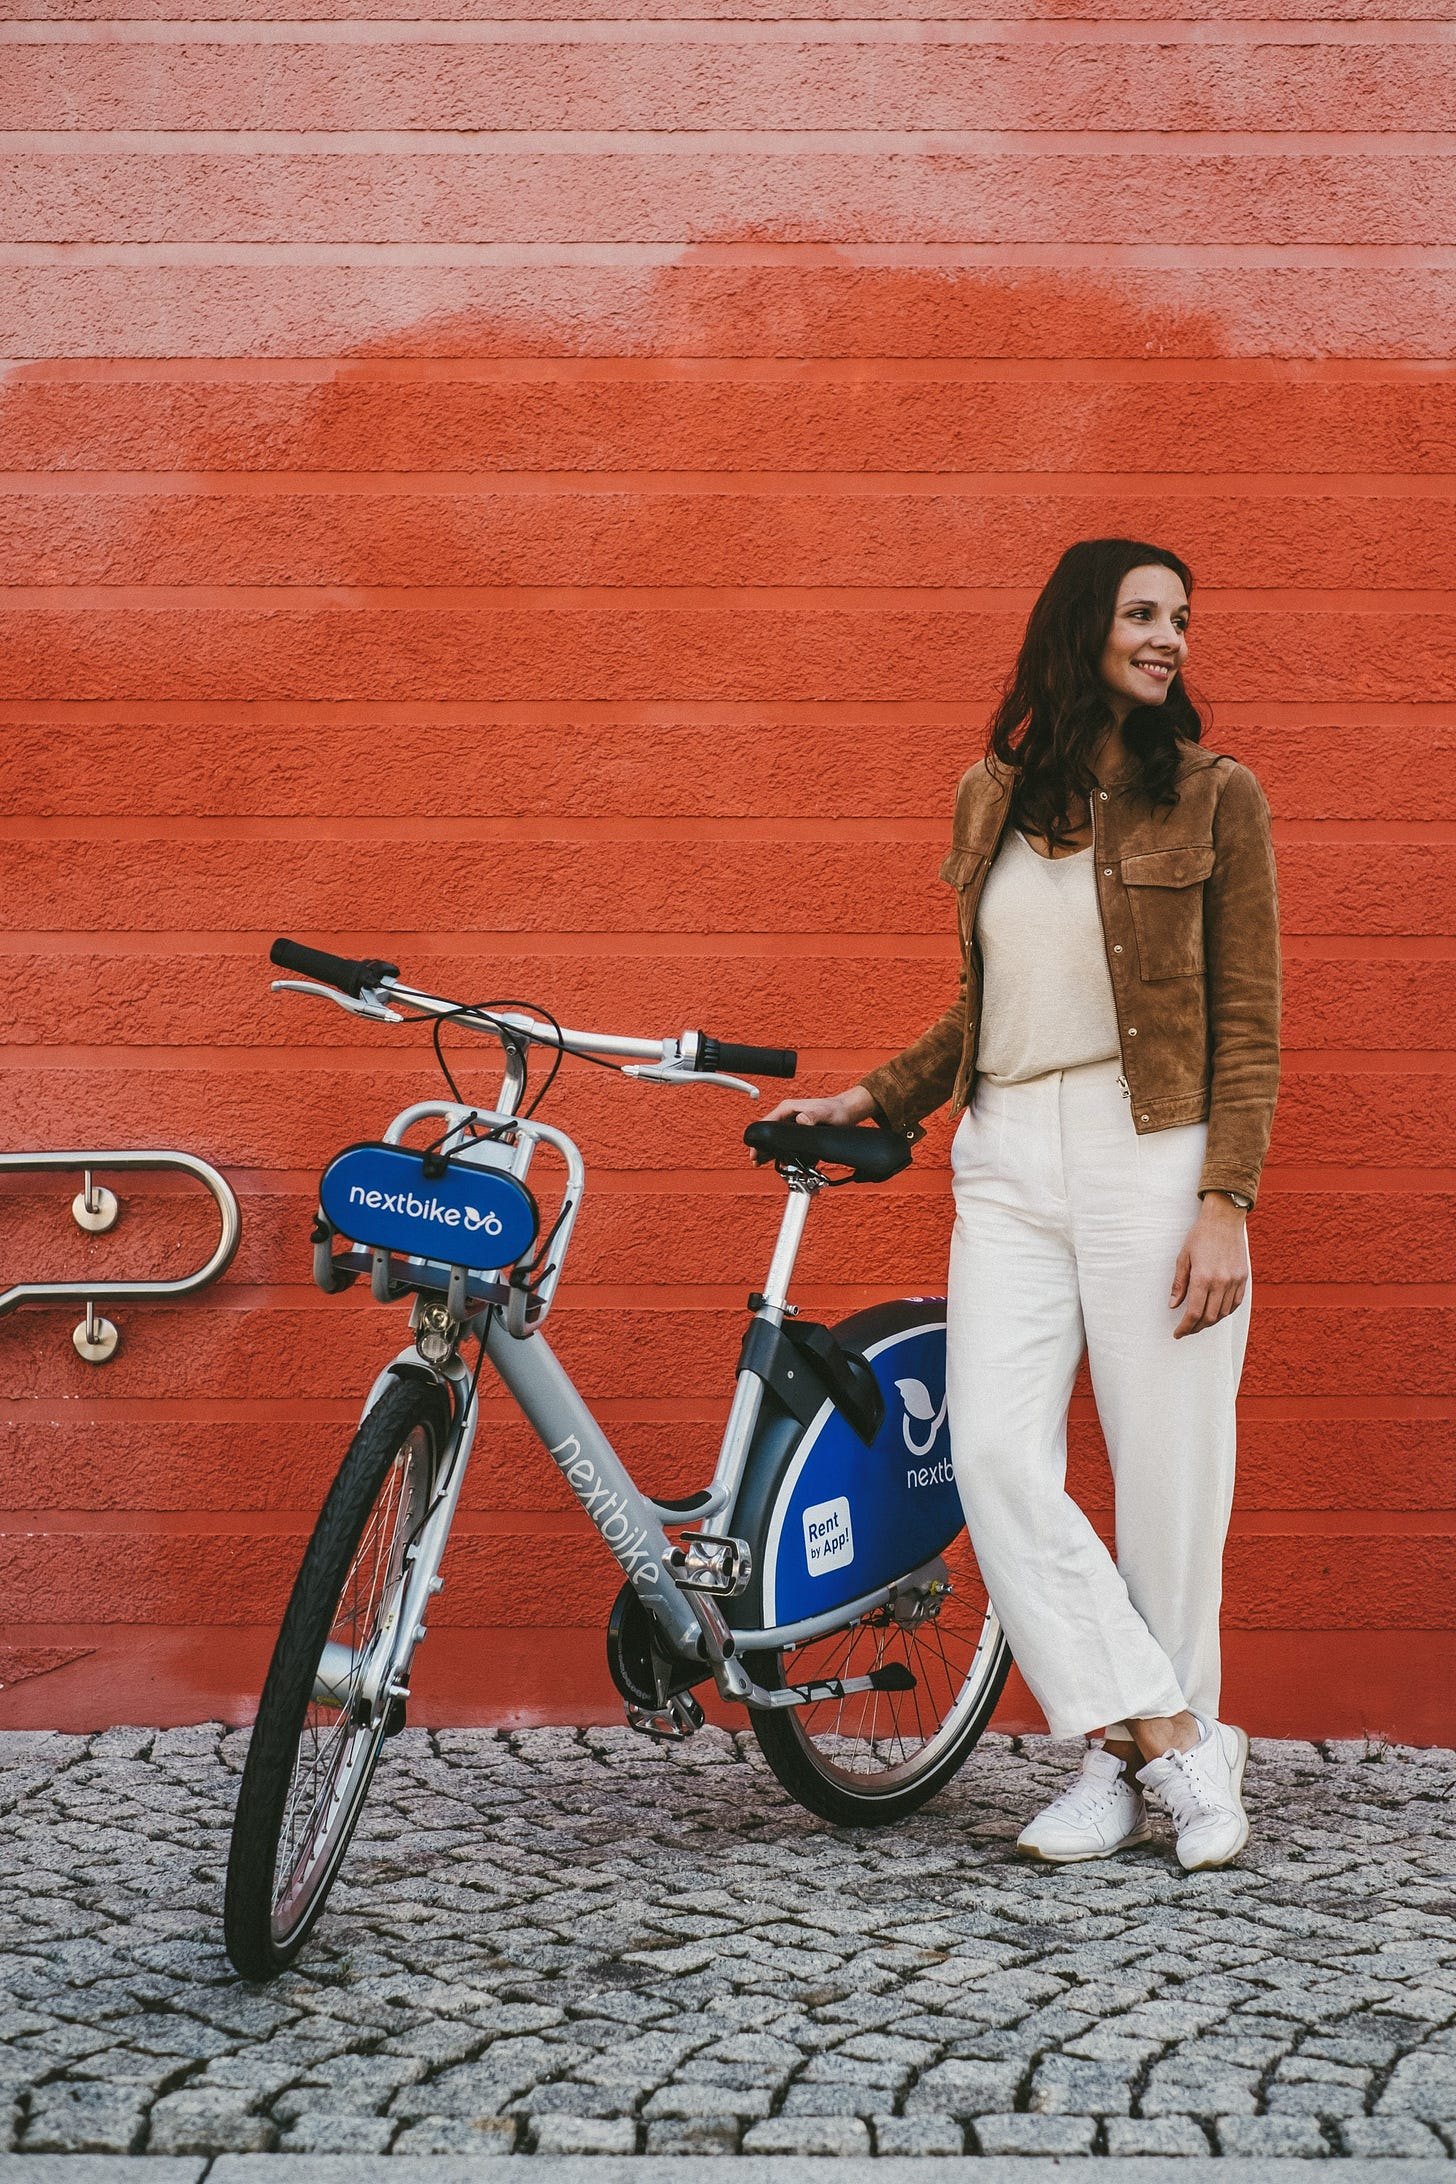 Woman standing next to a bike from a bike-sharing company